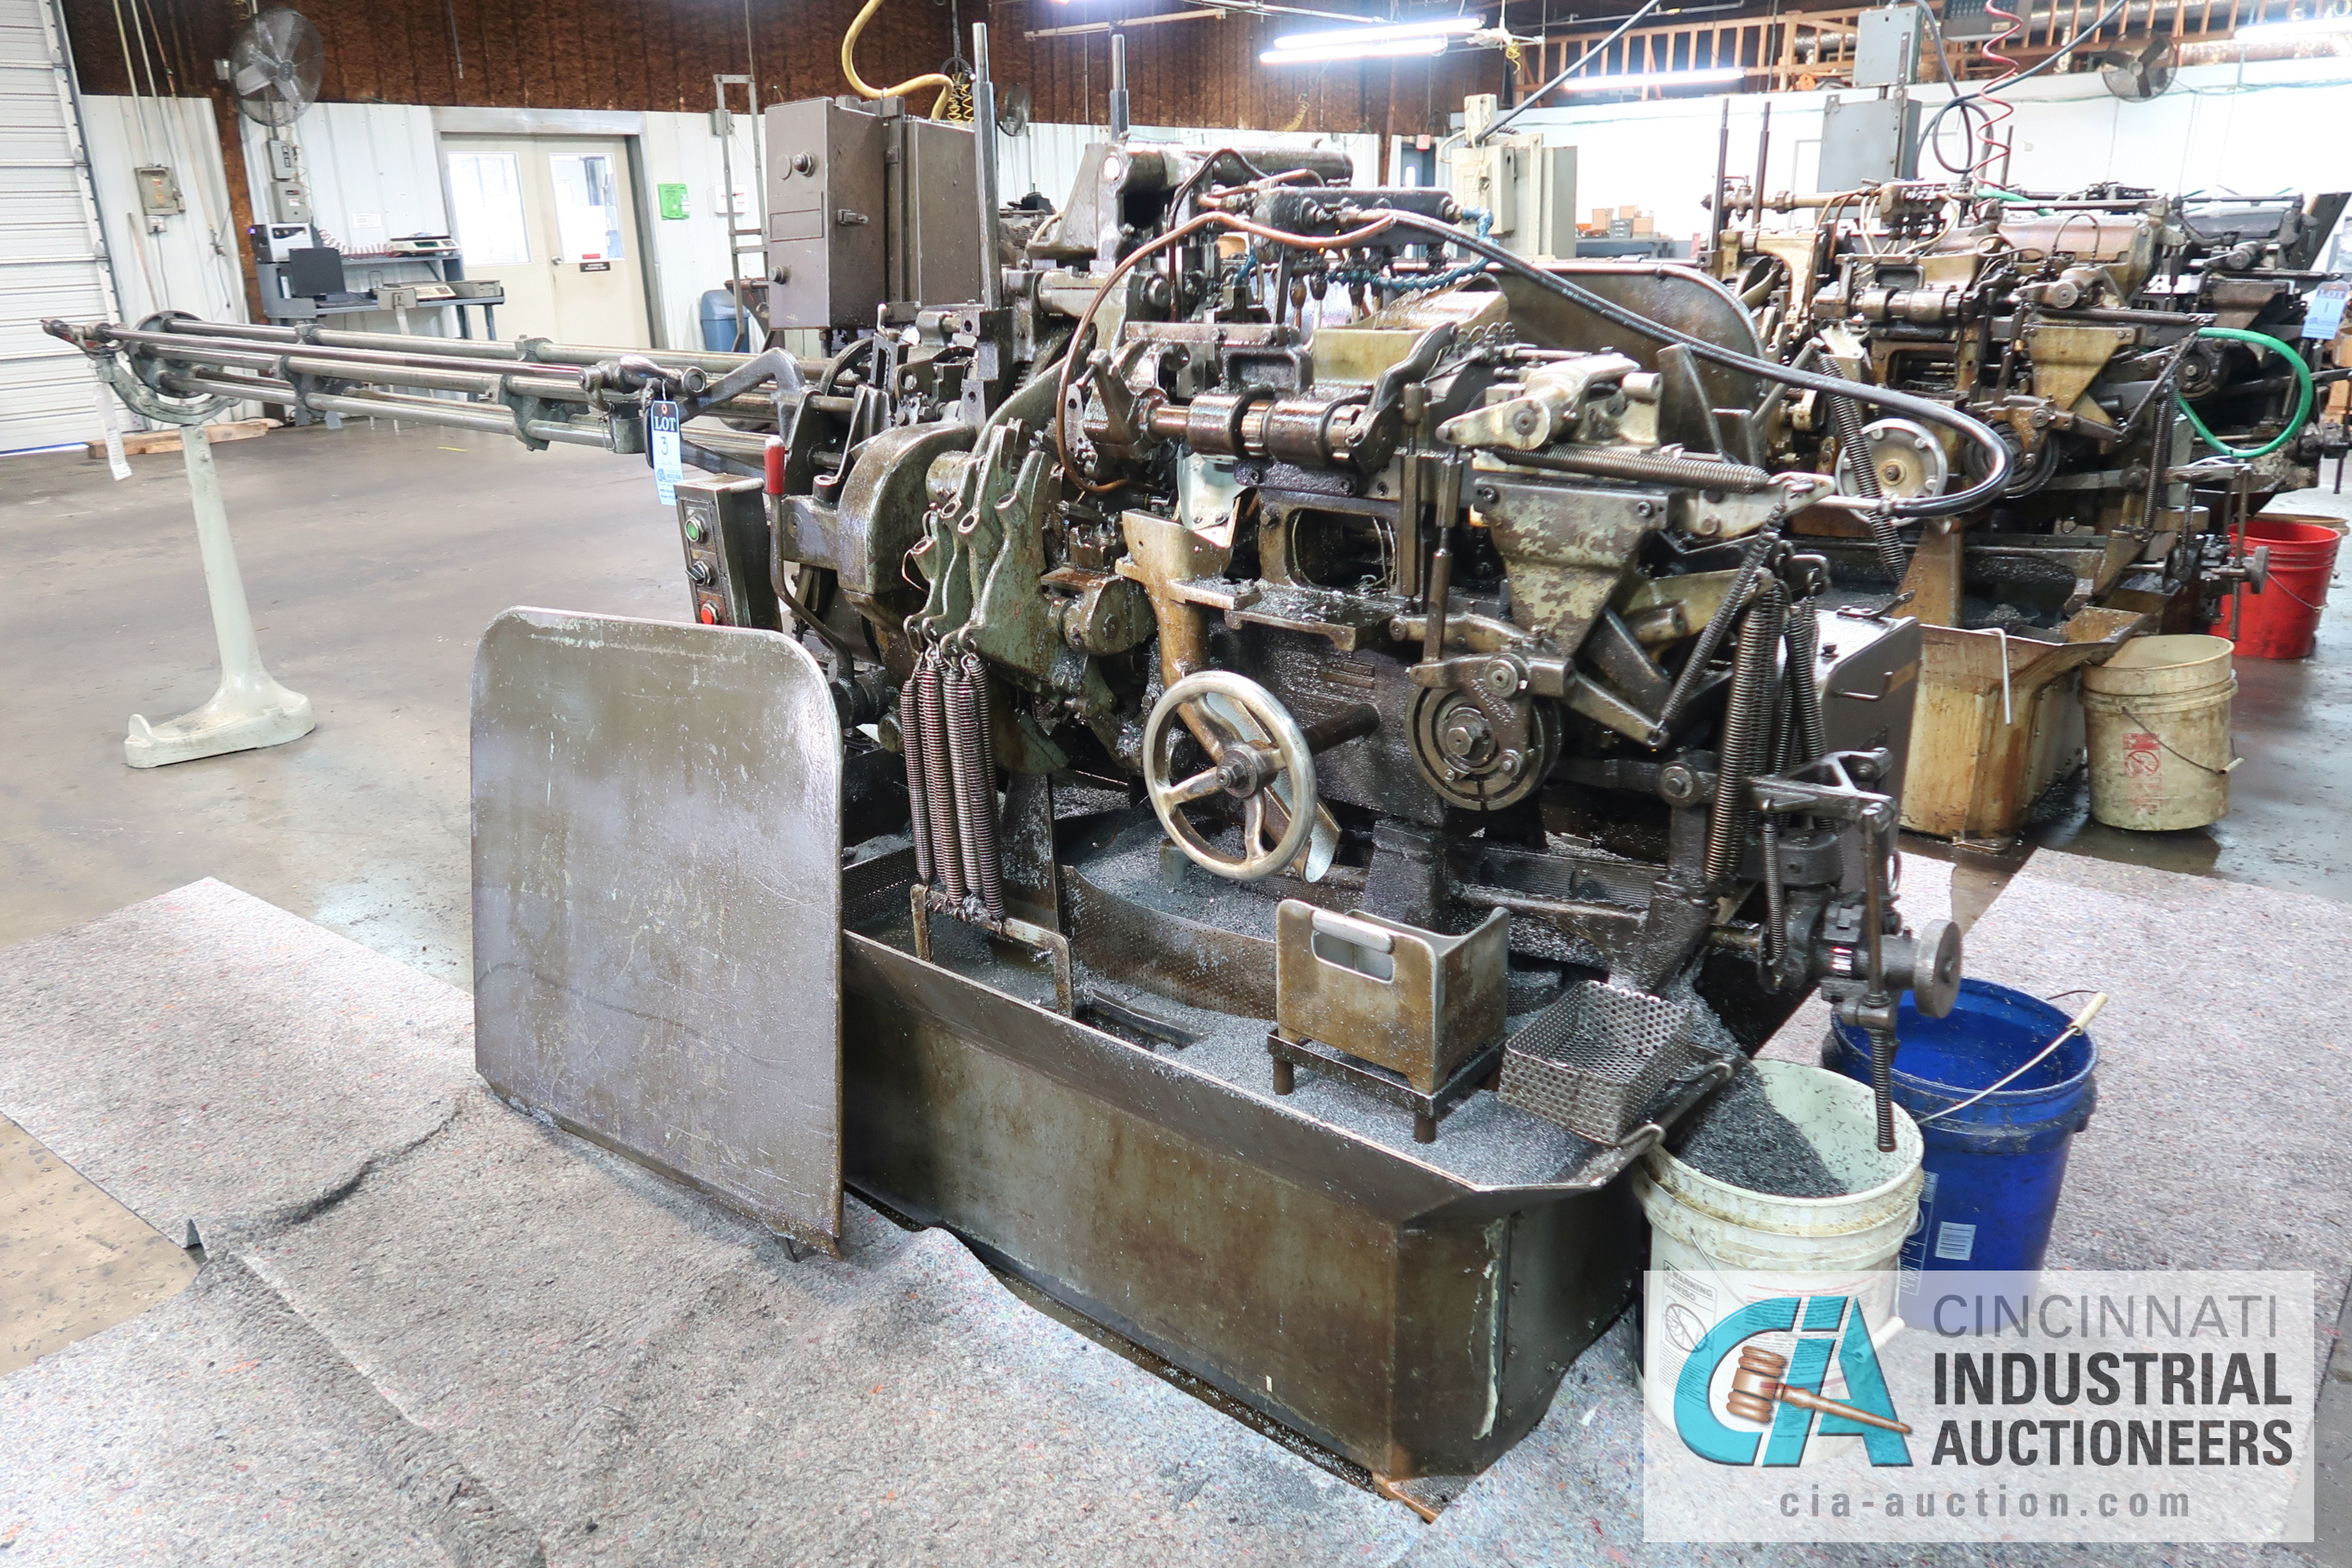 """Lot 3 - 3/4"""" DAVENPORT 5-SPINDLE SCREW MACHINE; S/N 11002 (NEW 11-1981) WITH 4TH POS. THREAD ROLL, PICK OFF,"""